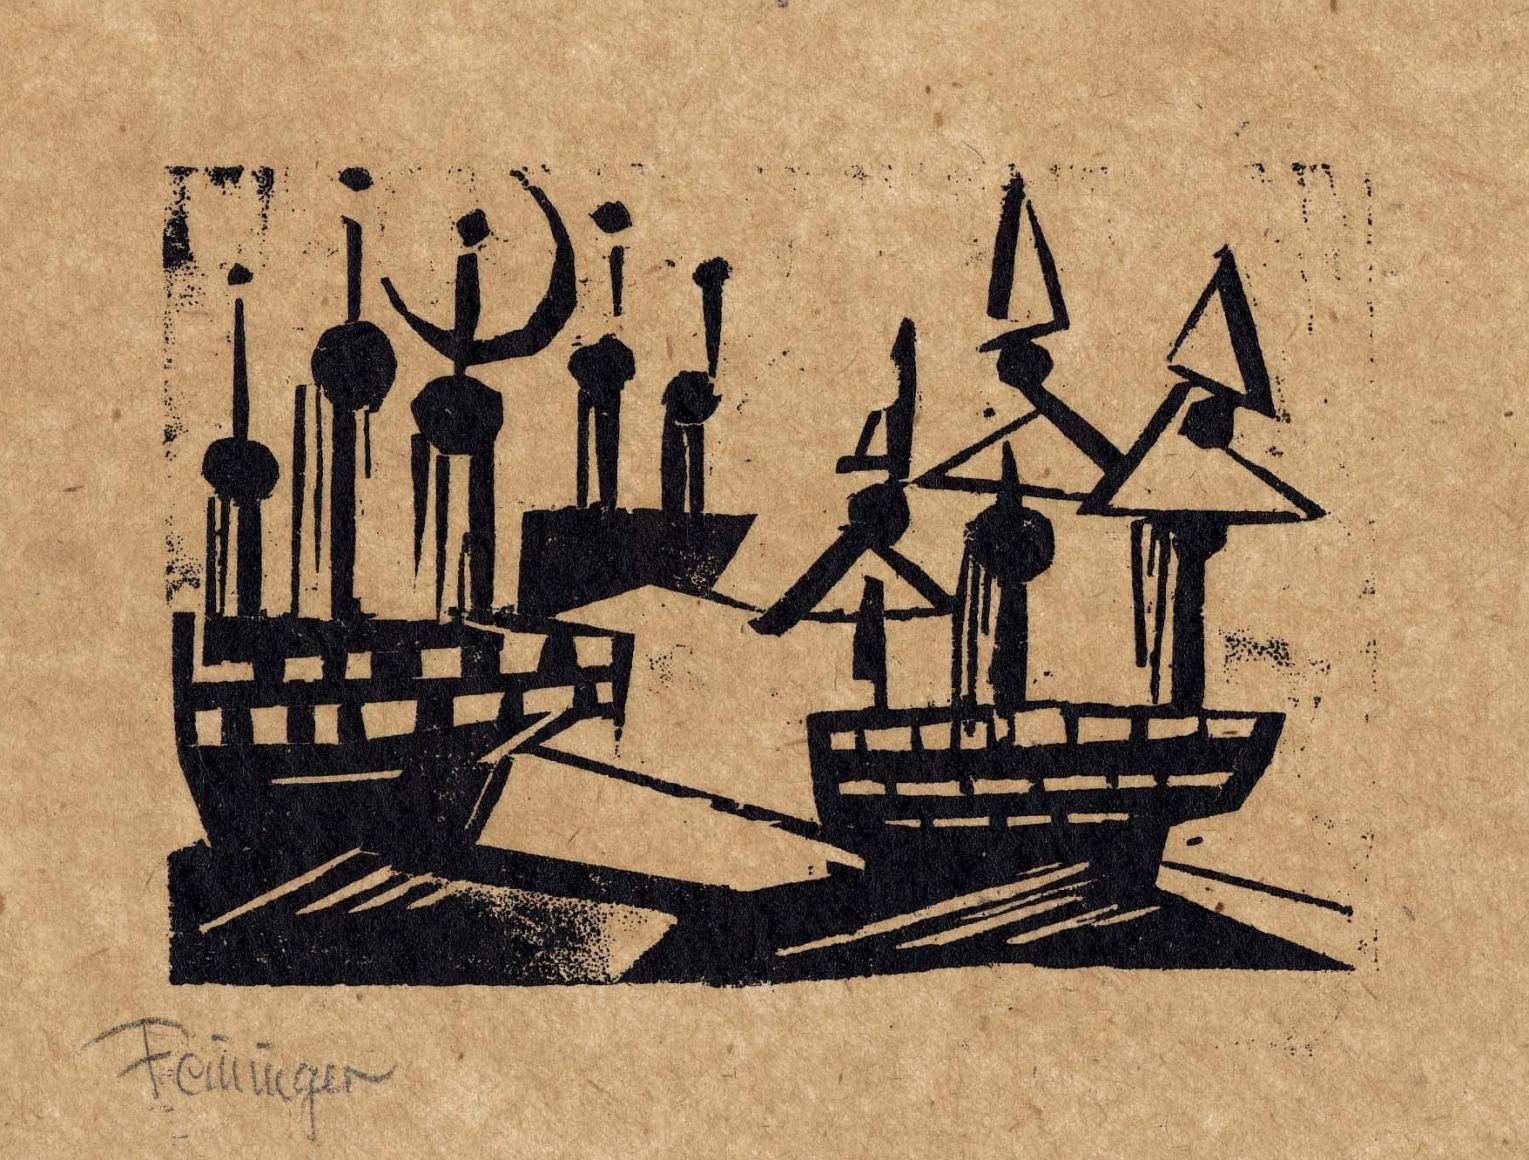 """Ships and New Moon"" woodcut by Lyonel Feininger"